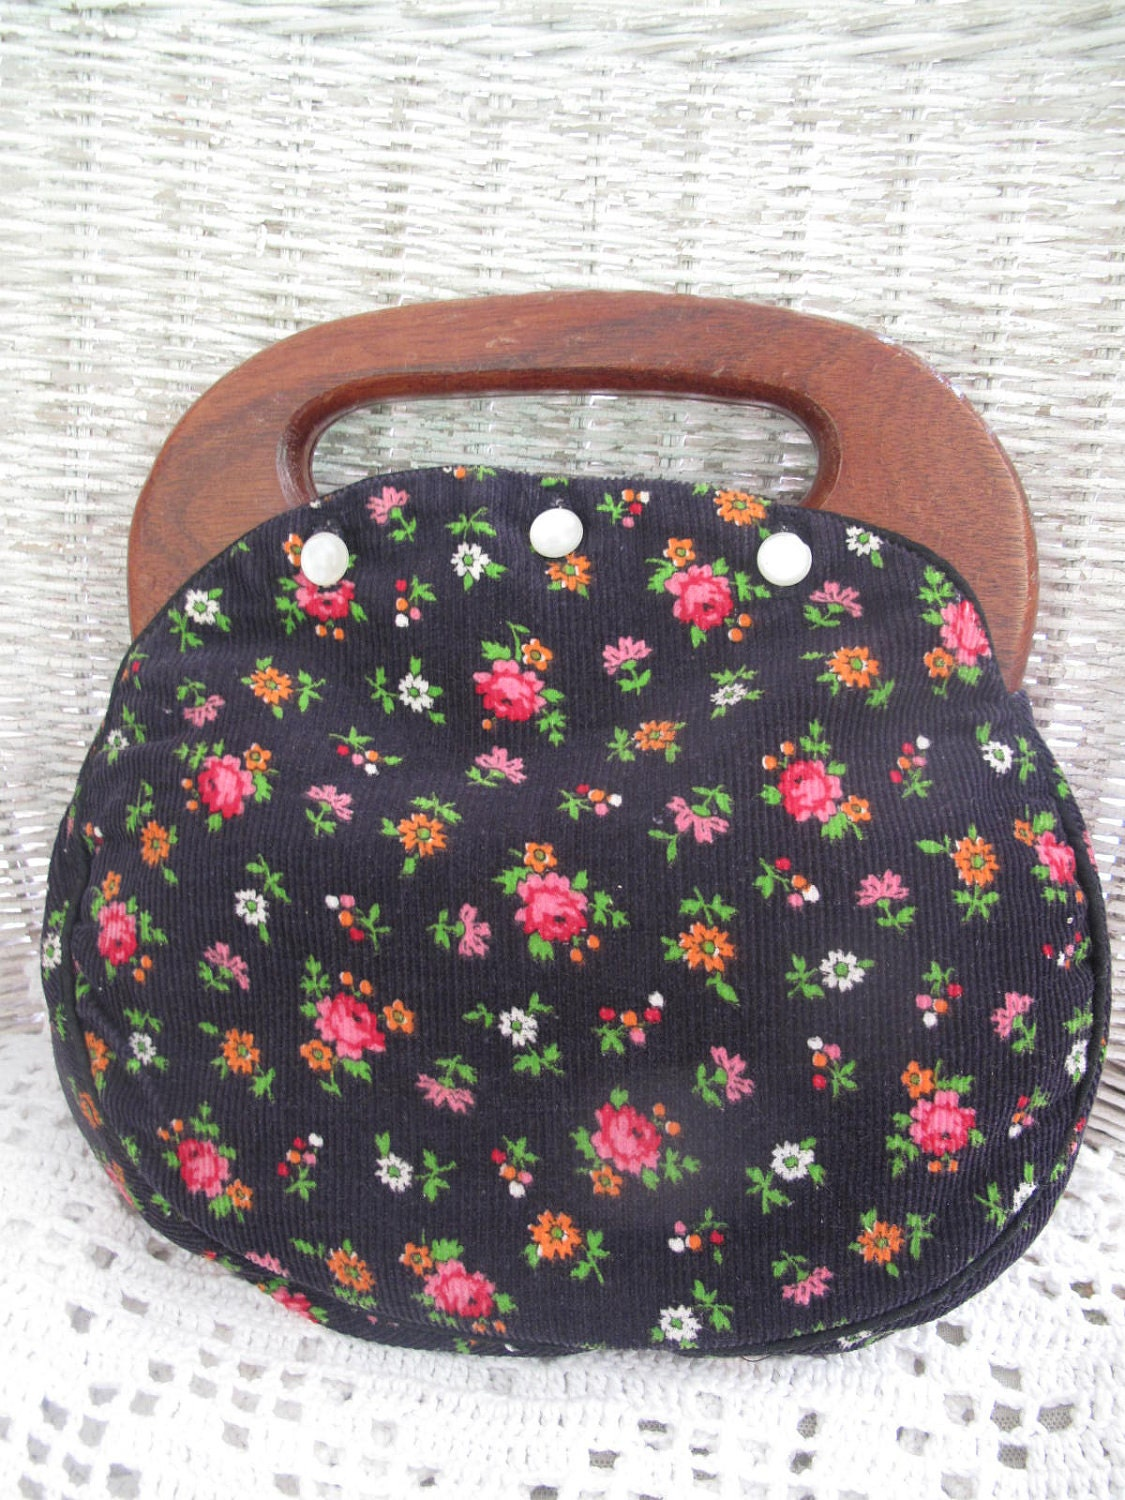 Changeable Wooden Handle Purse With Button On Covers